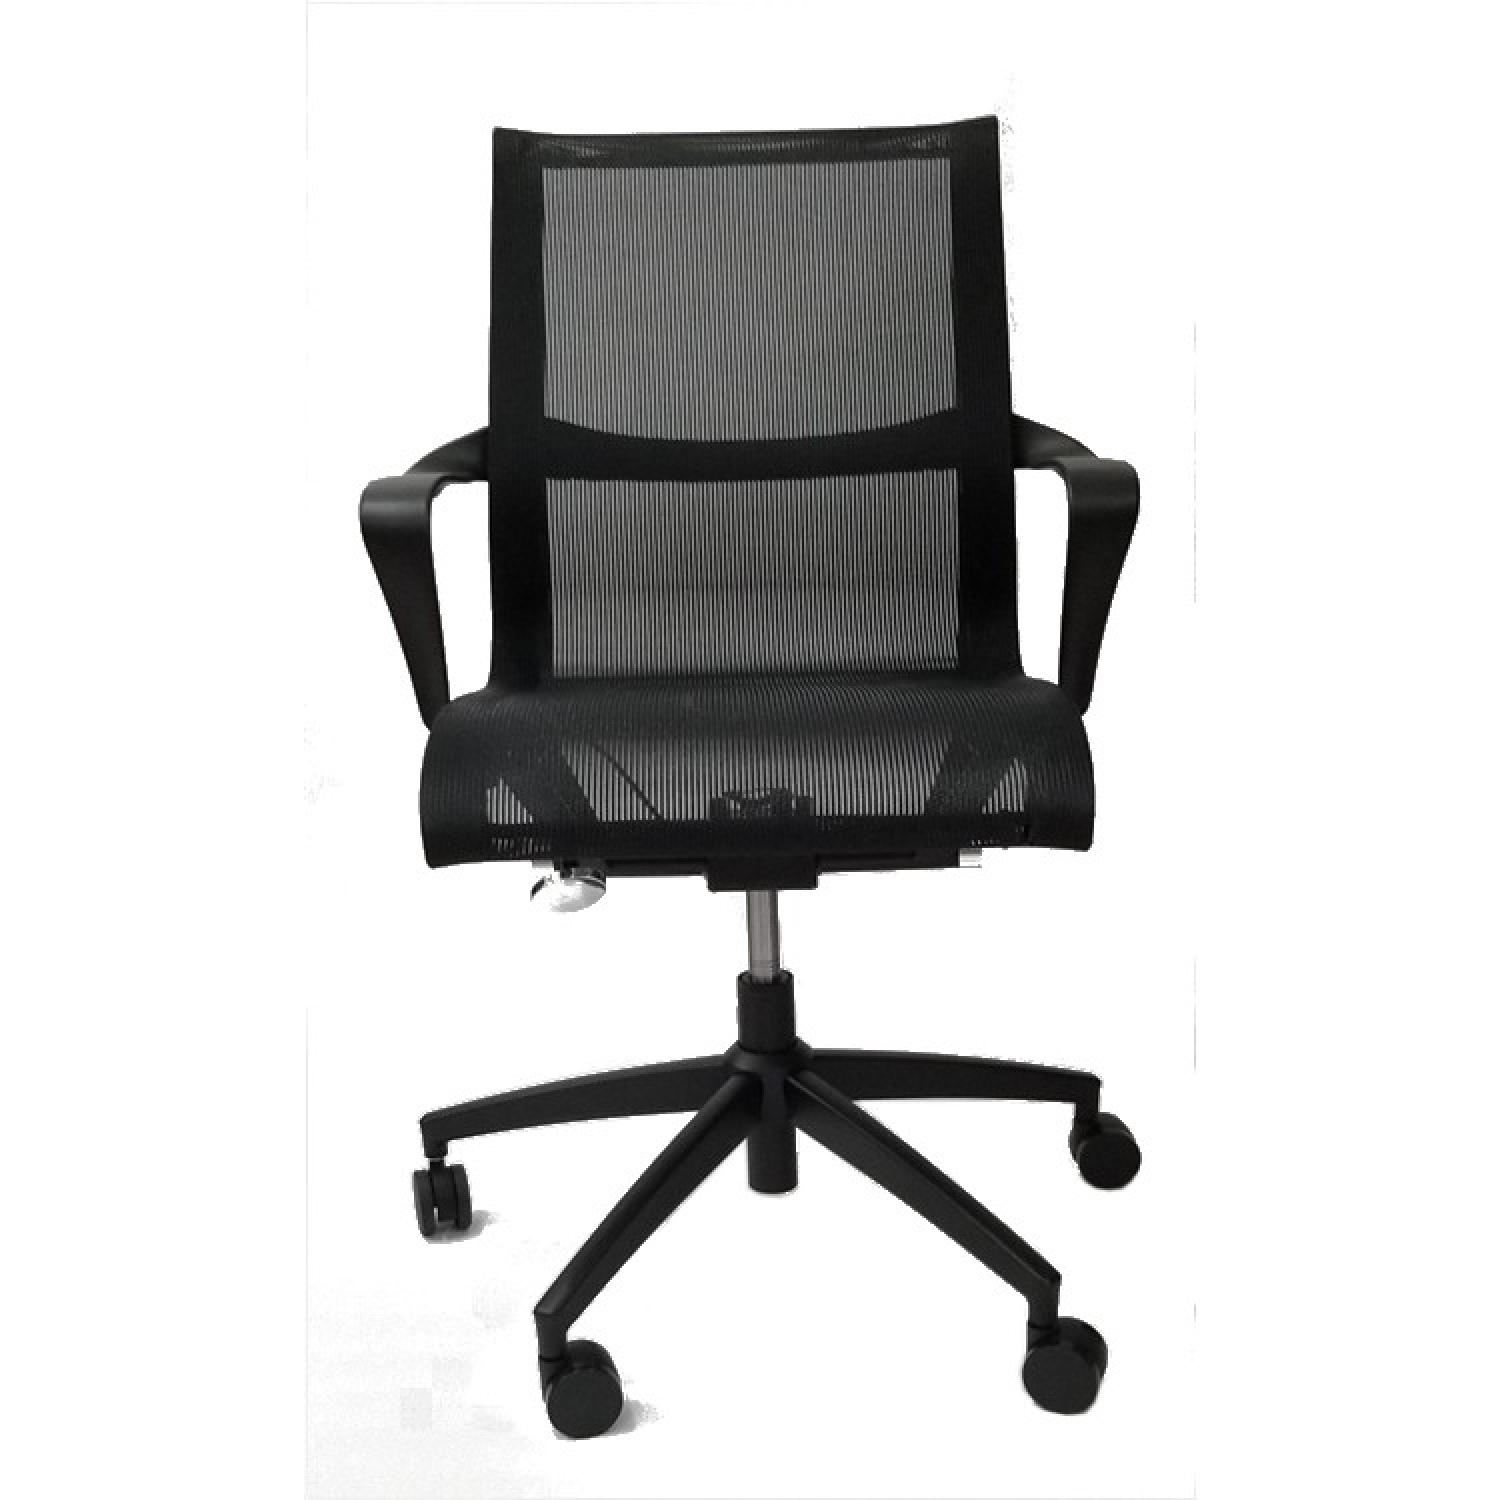 Modern Office Chair w/ Armrests & Black Mesh Fabric - image-3